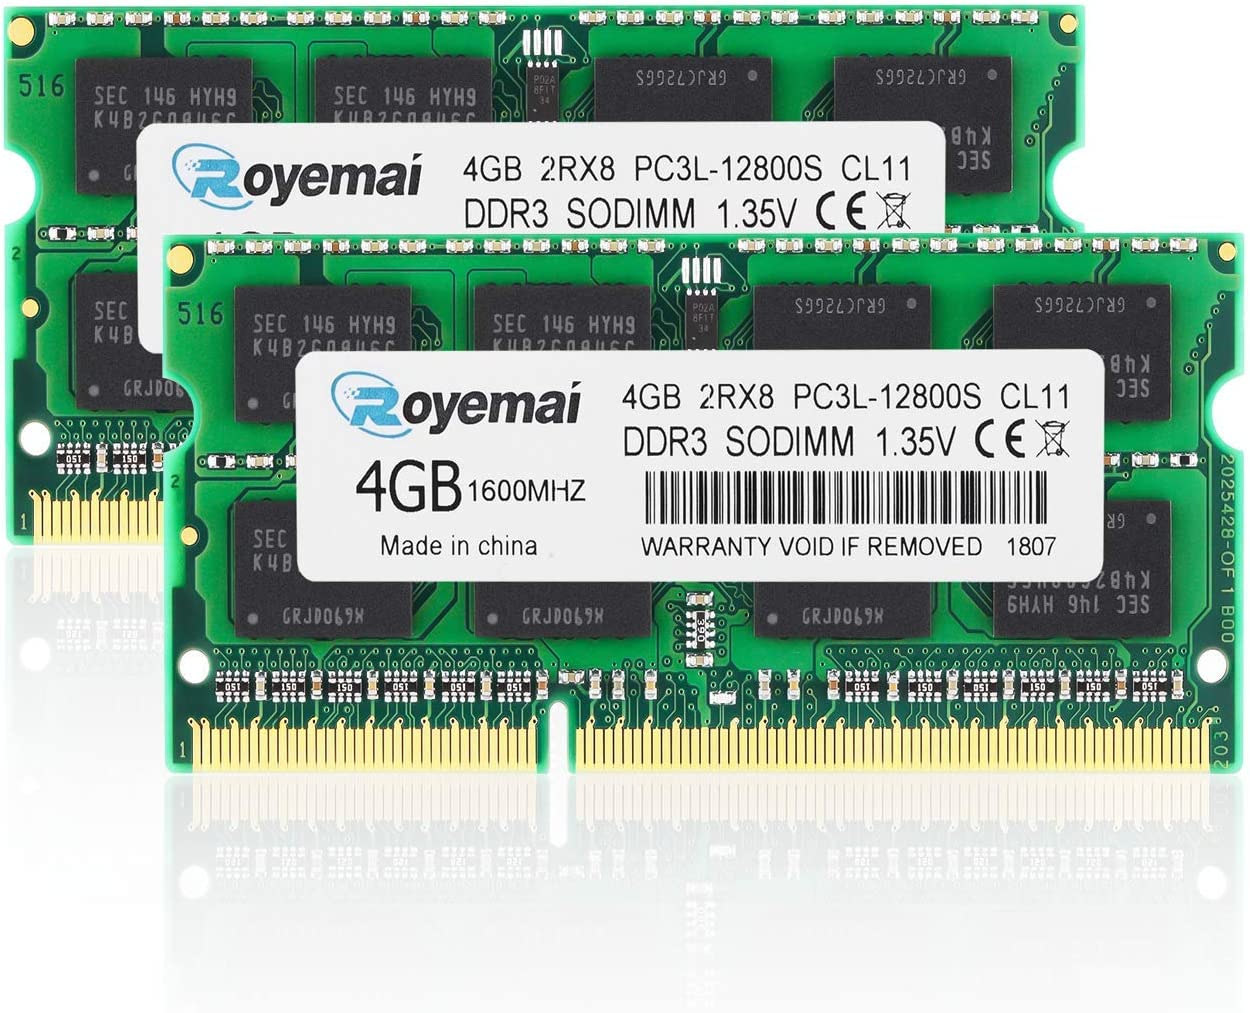 ROYEMAI 8GB (2x4GB) PC3 / PC3L-12800 Sodimm DDR3 / DDR3L 1600MHz 1.35V/1.5V CL11 2RX8 Non ECC Unbuffered RAM Memory Module for Laptop